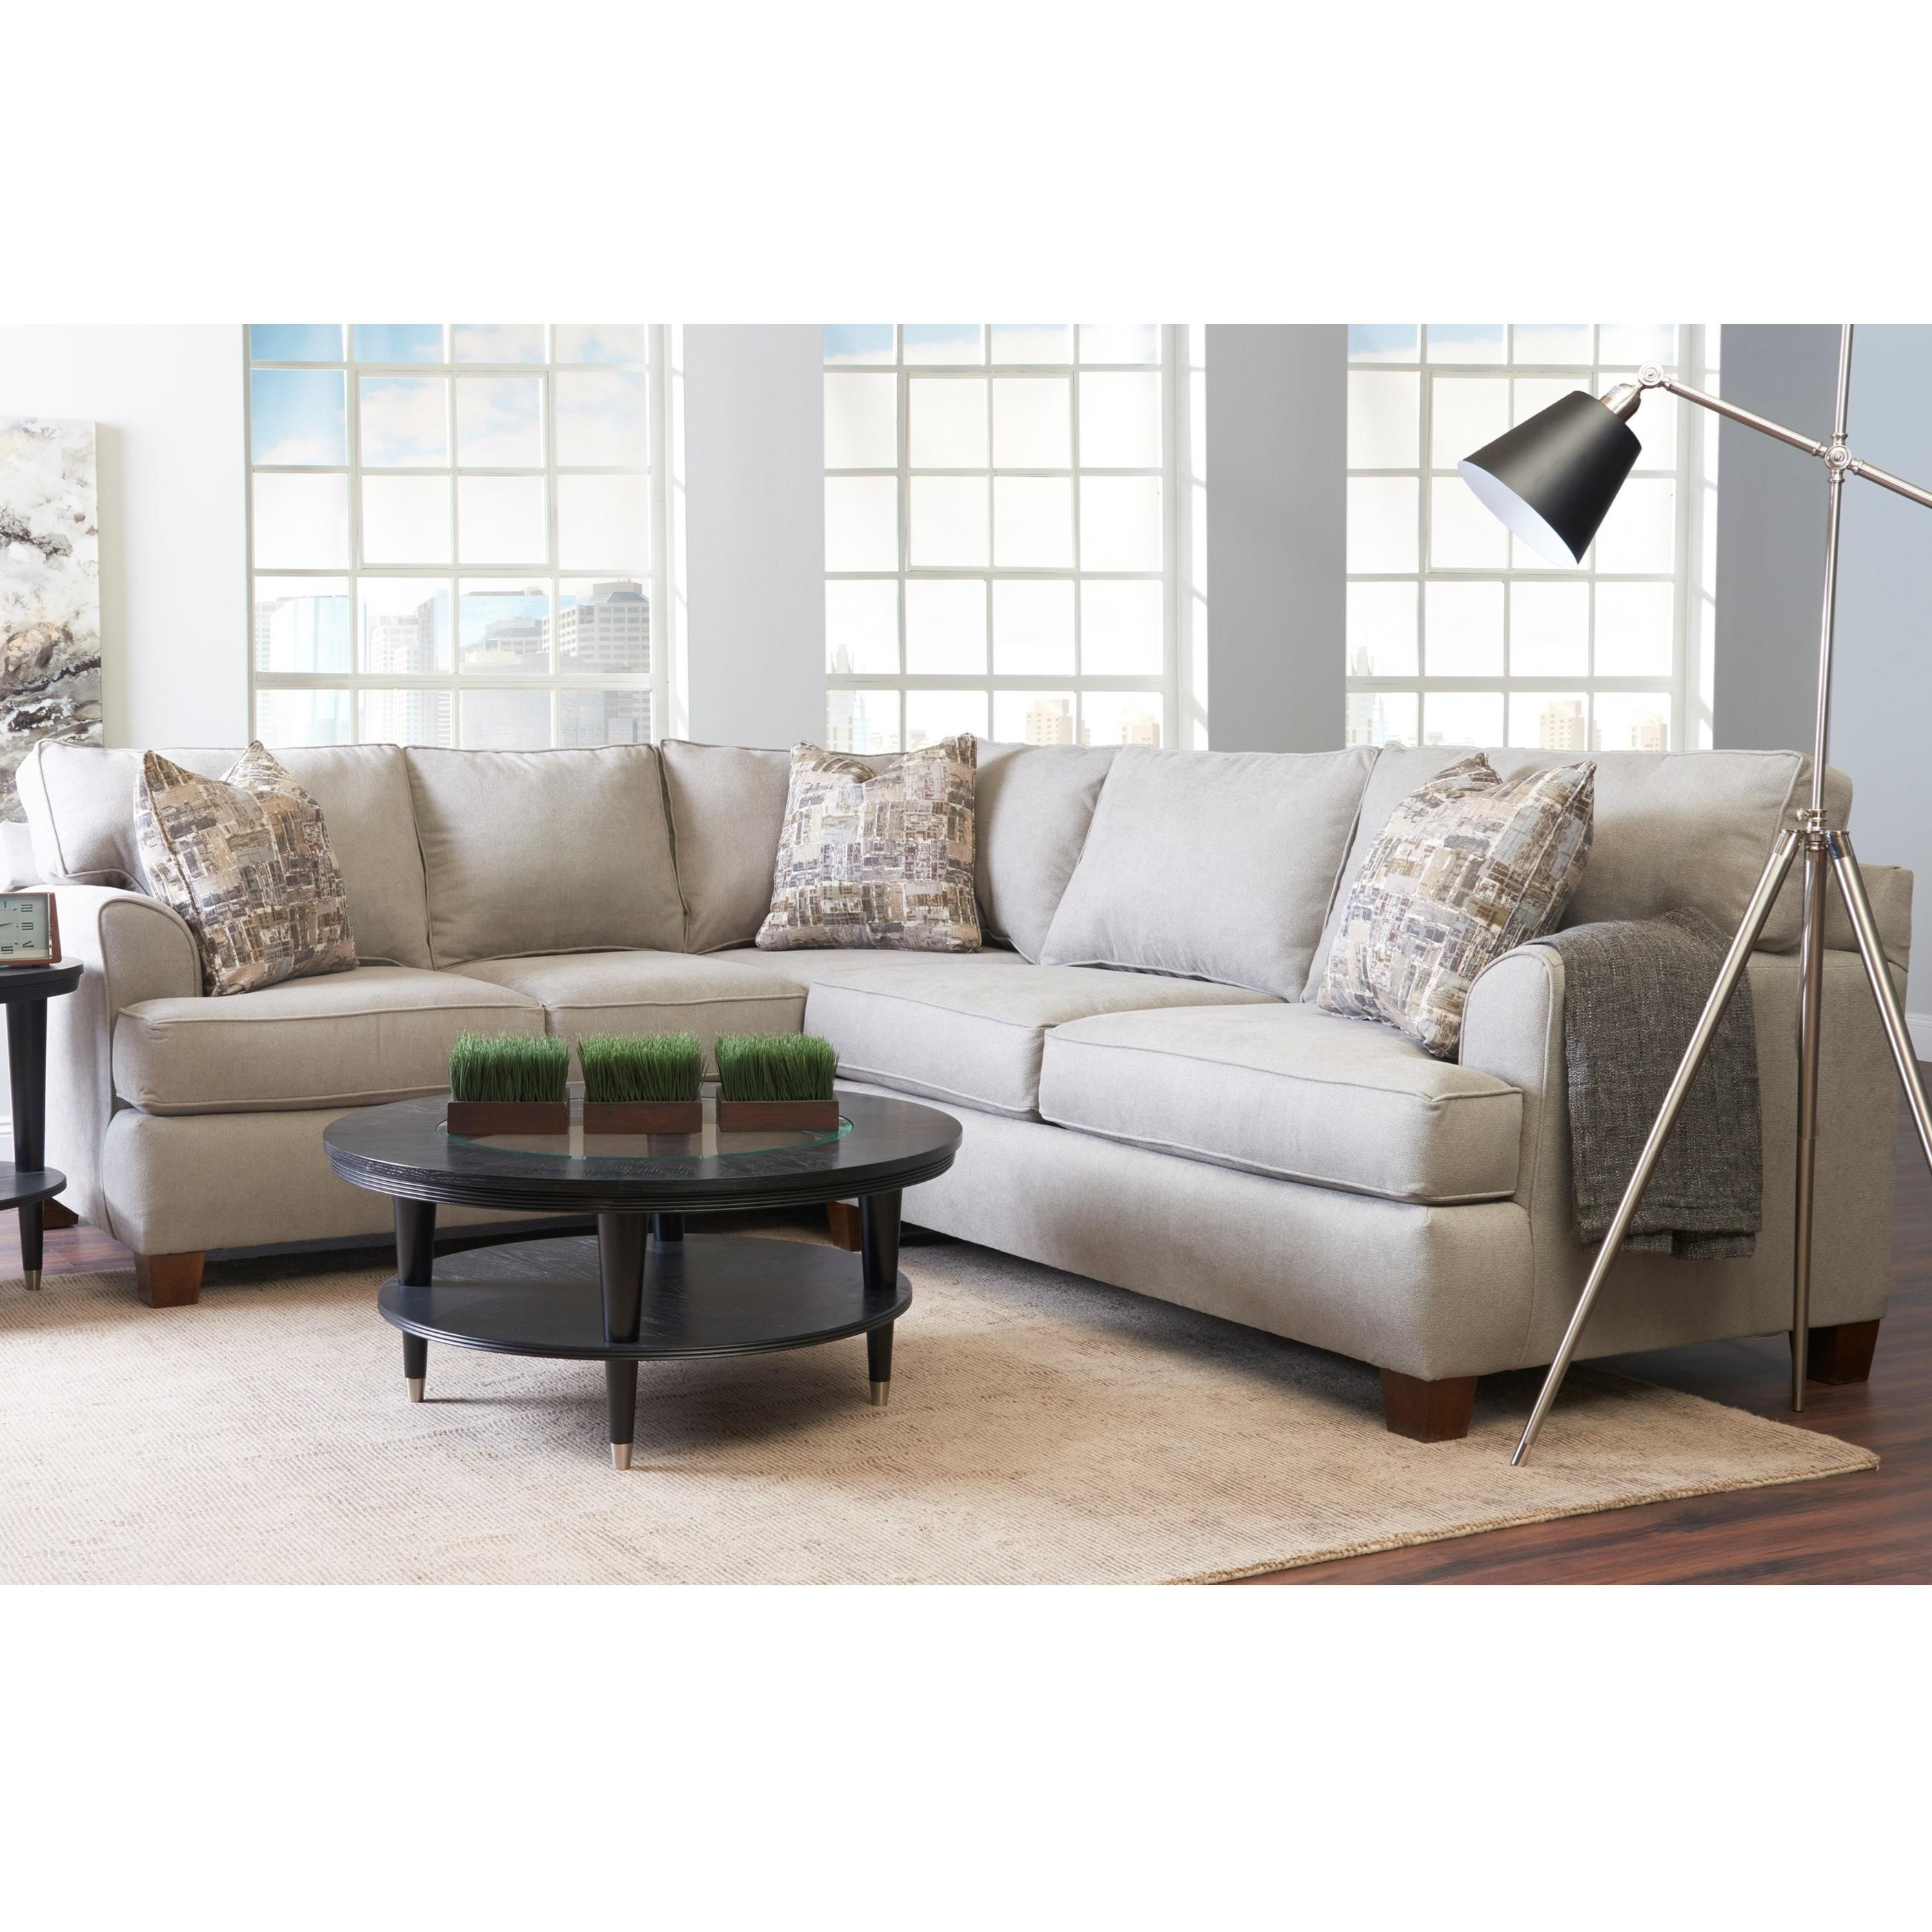 Casual 2-Piece Sectional with Right-Facing Love Seat